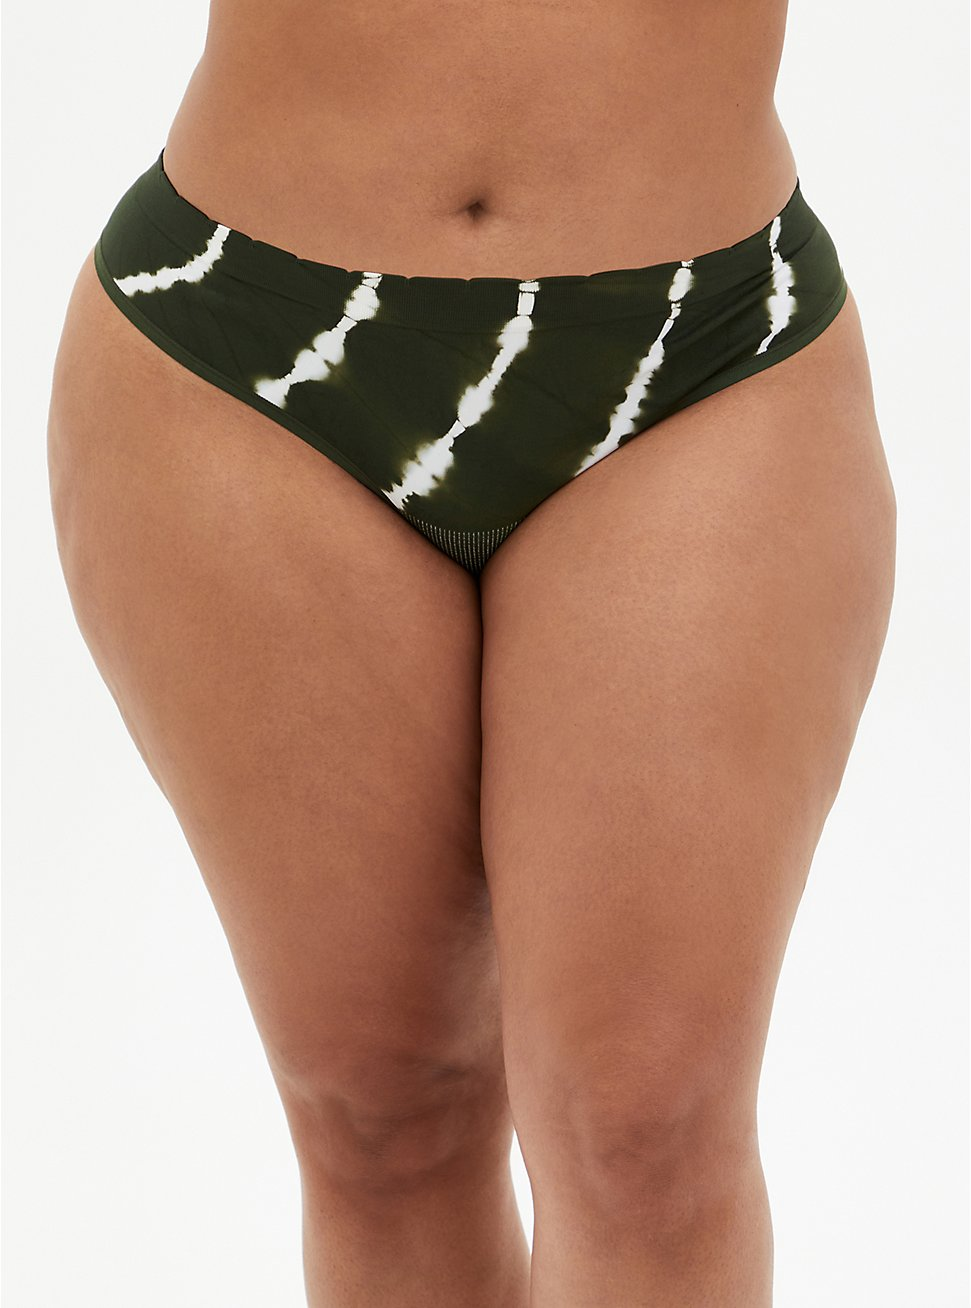 Olive Green Tie-Dye Seamless Thong Panty, , hi-res